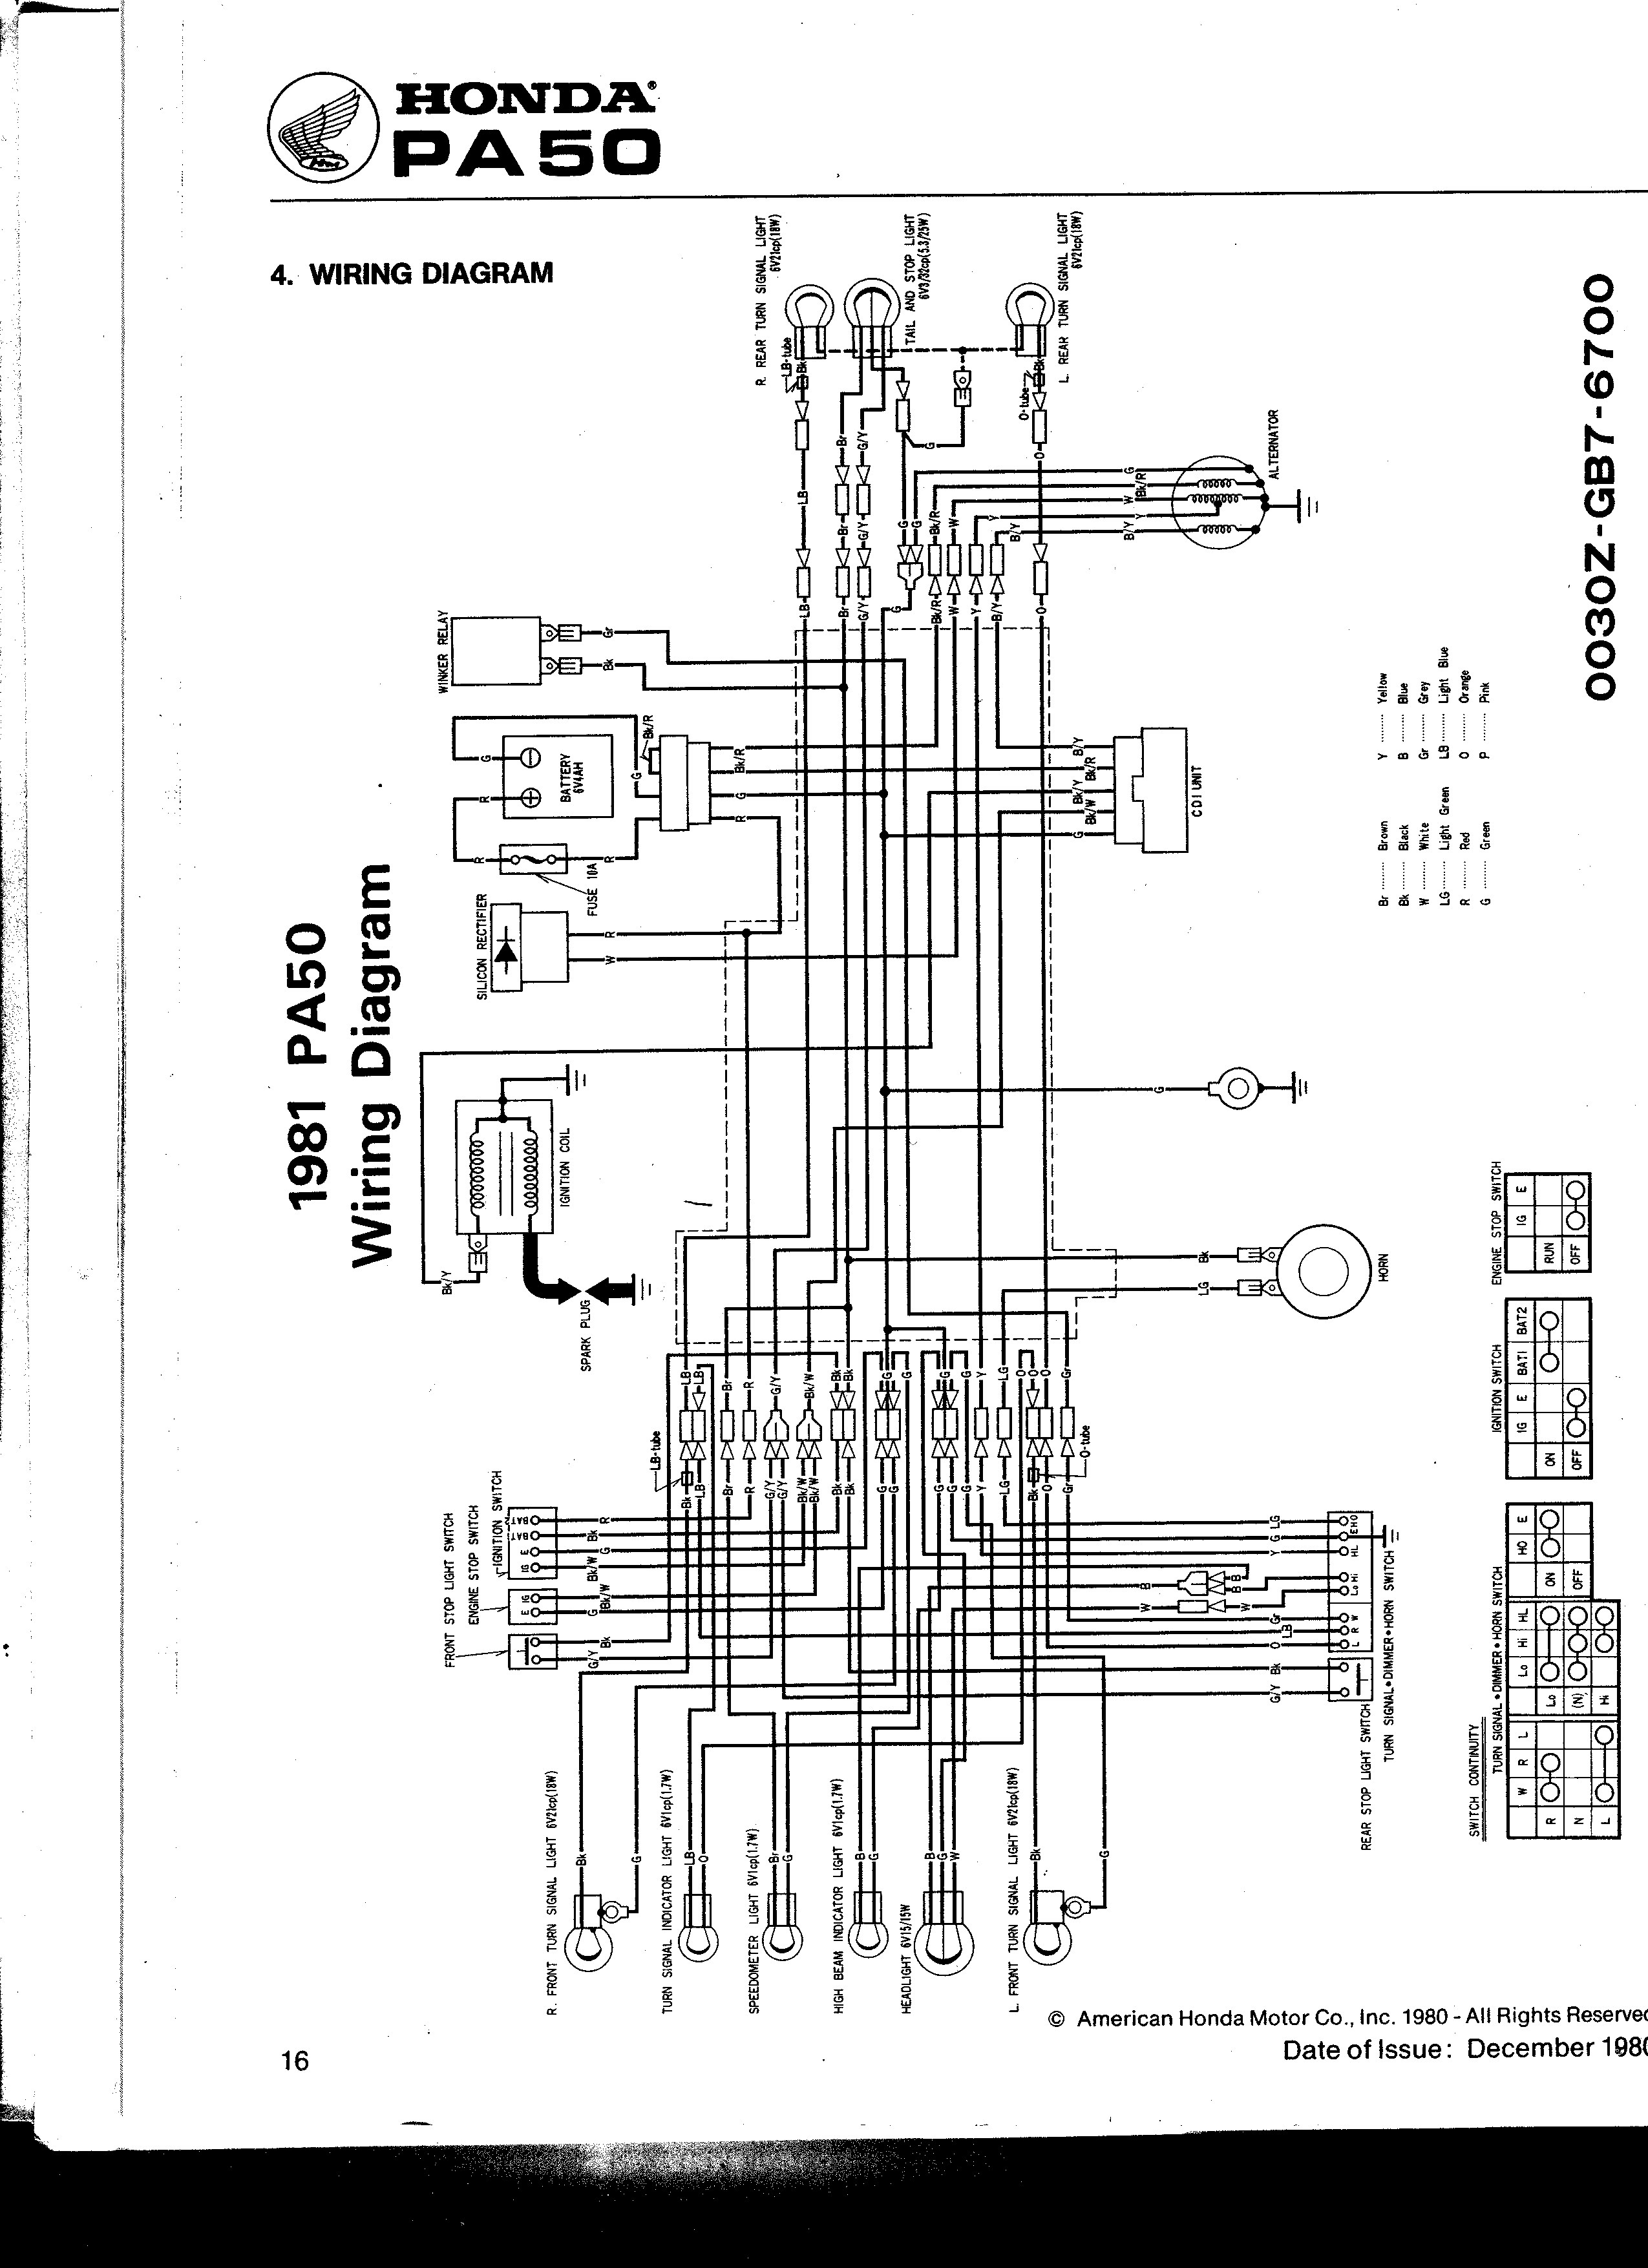 Re: 83 Honda PA50II / Hobbit CDI Schematic [by silverfox